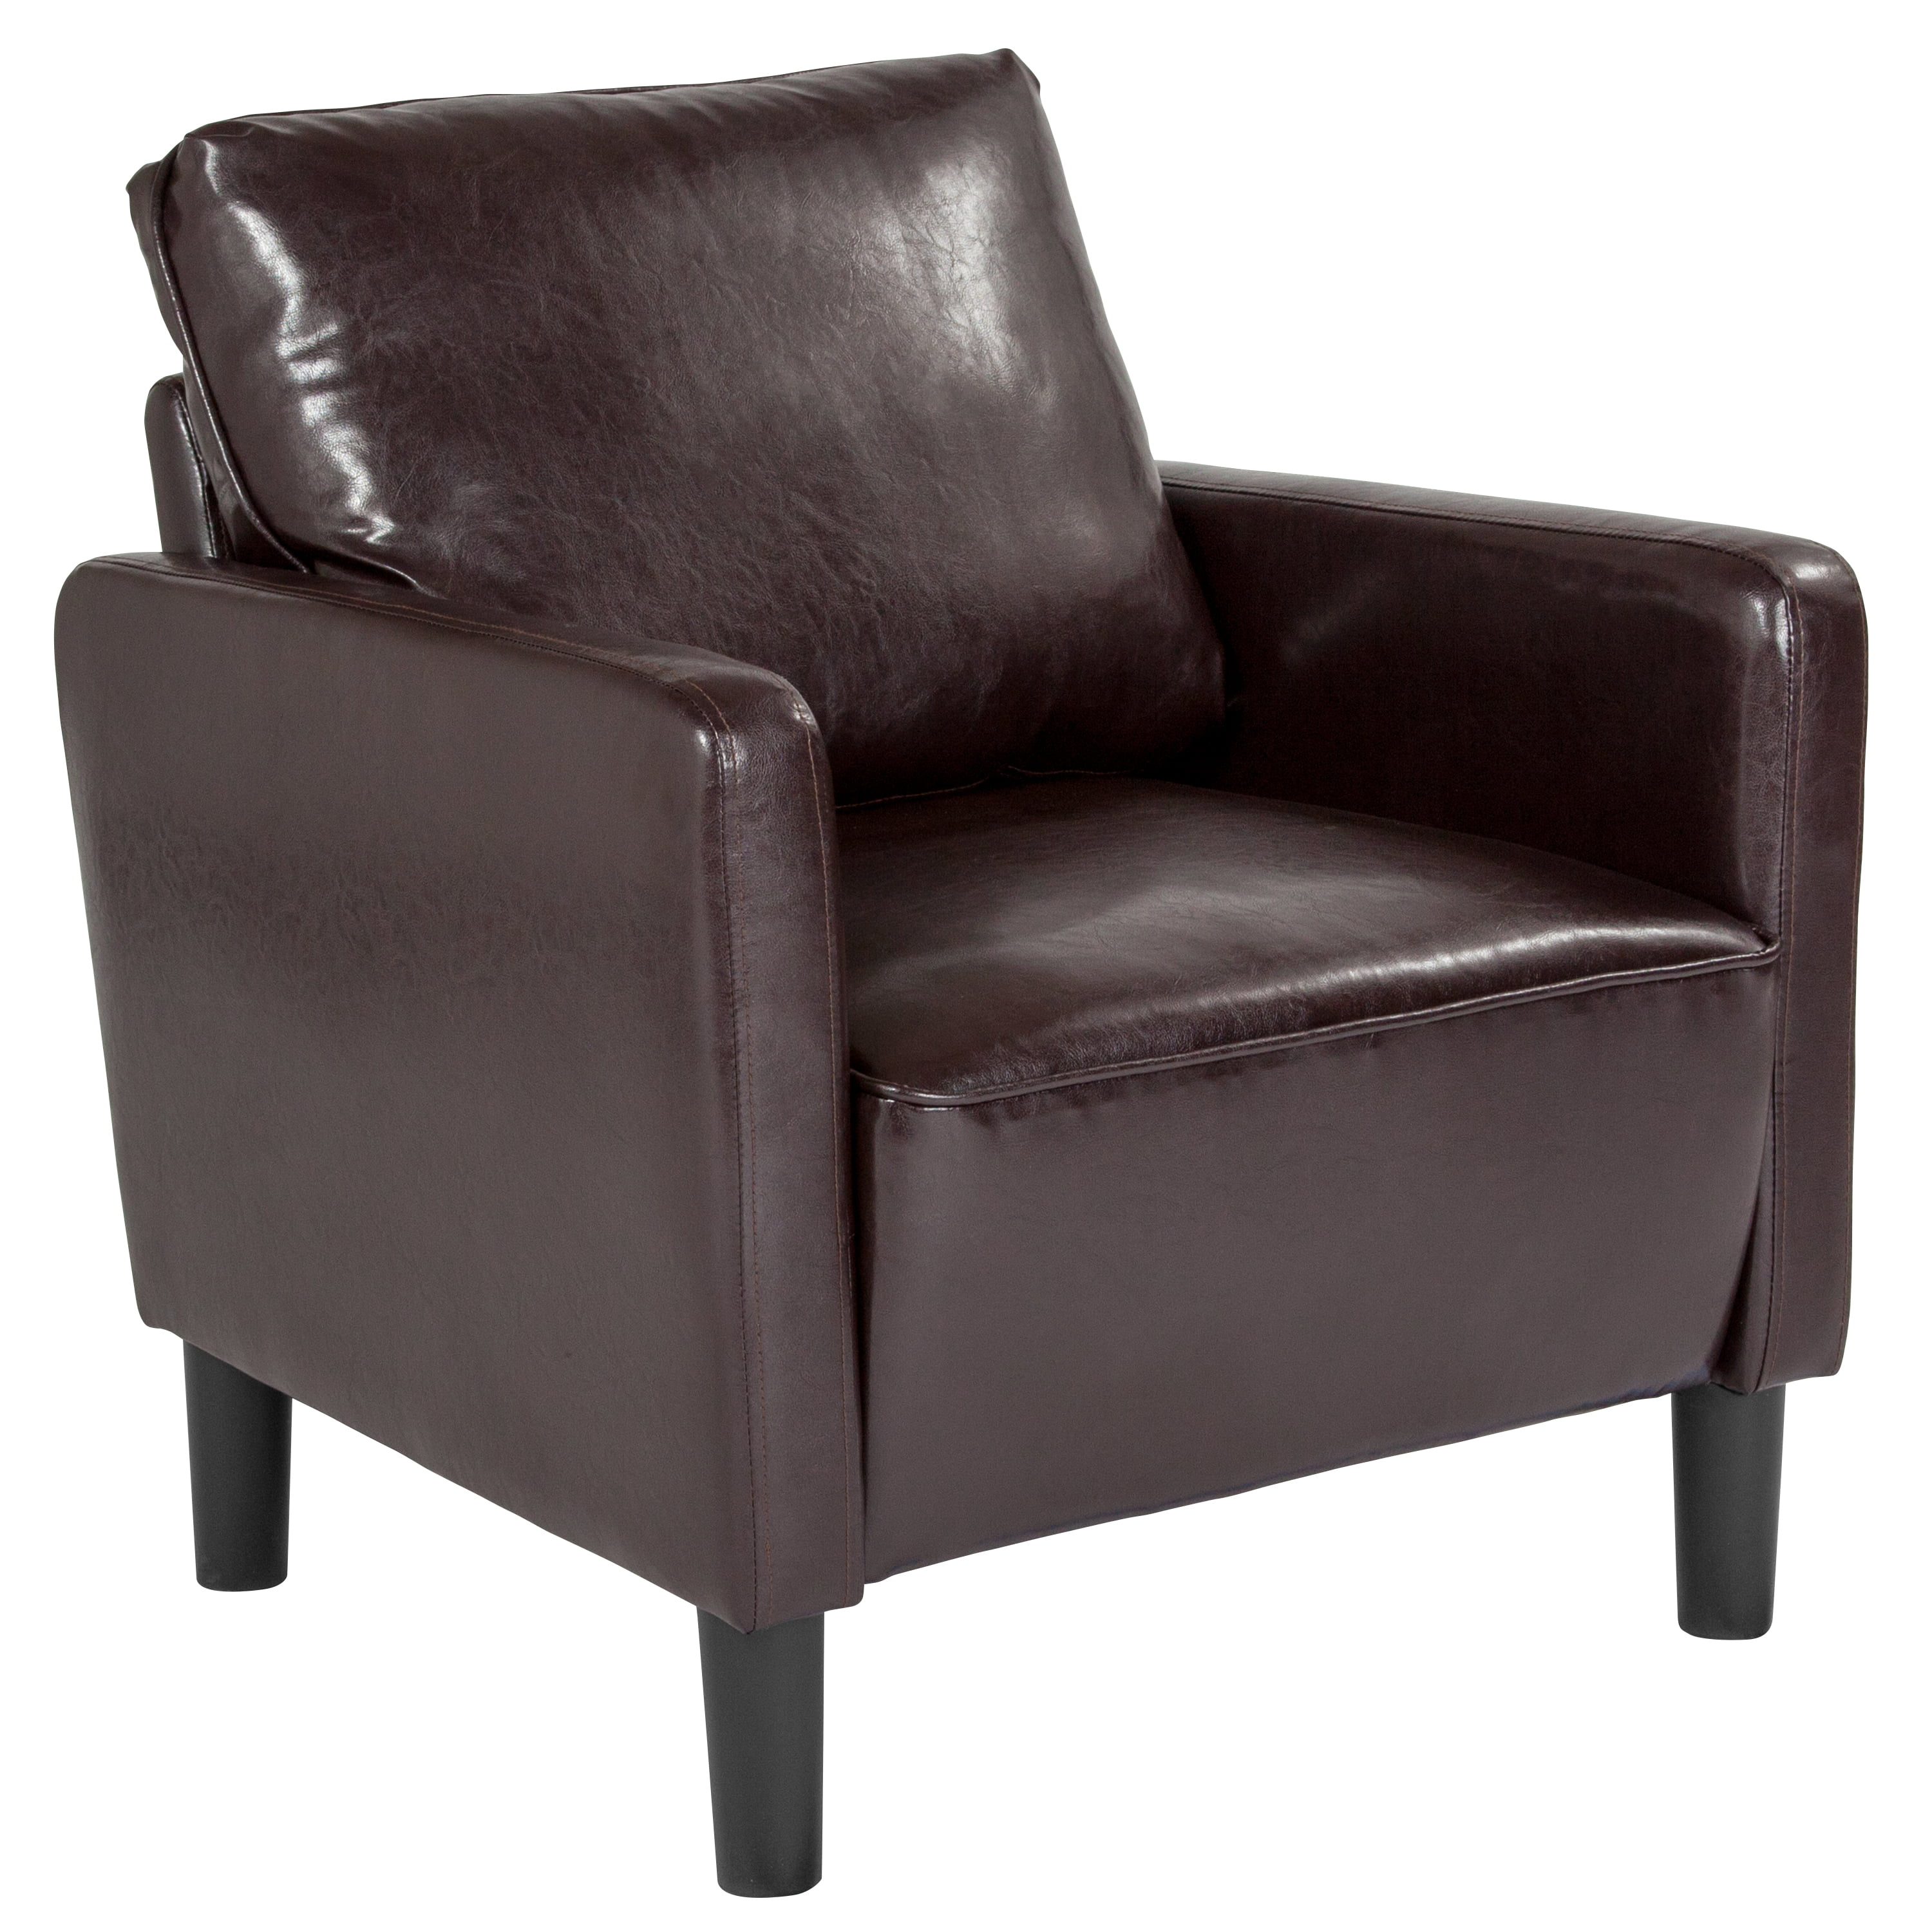 Washington park flash furniture upholstered living room chair with straight arms in brown for Upholstered living room chairs with arms